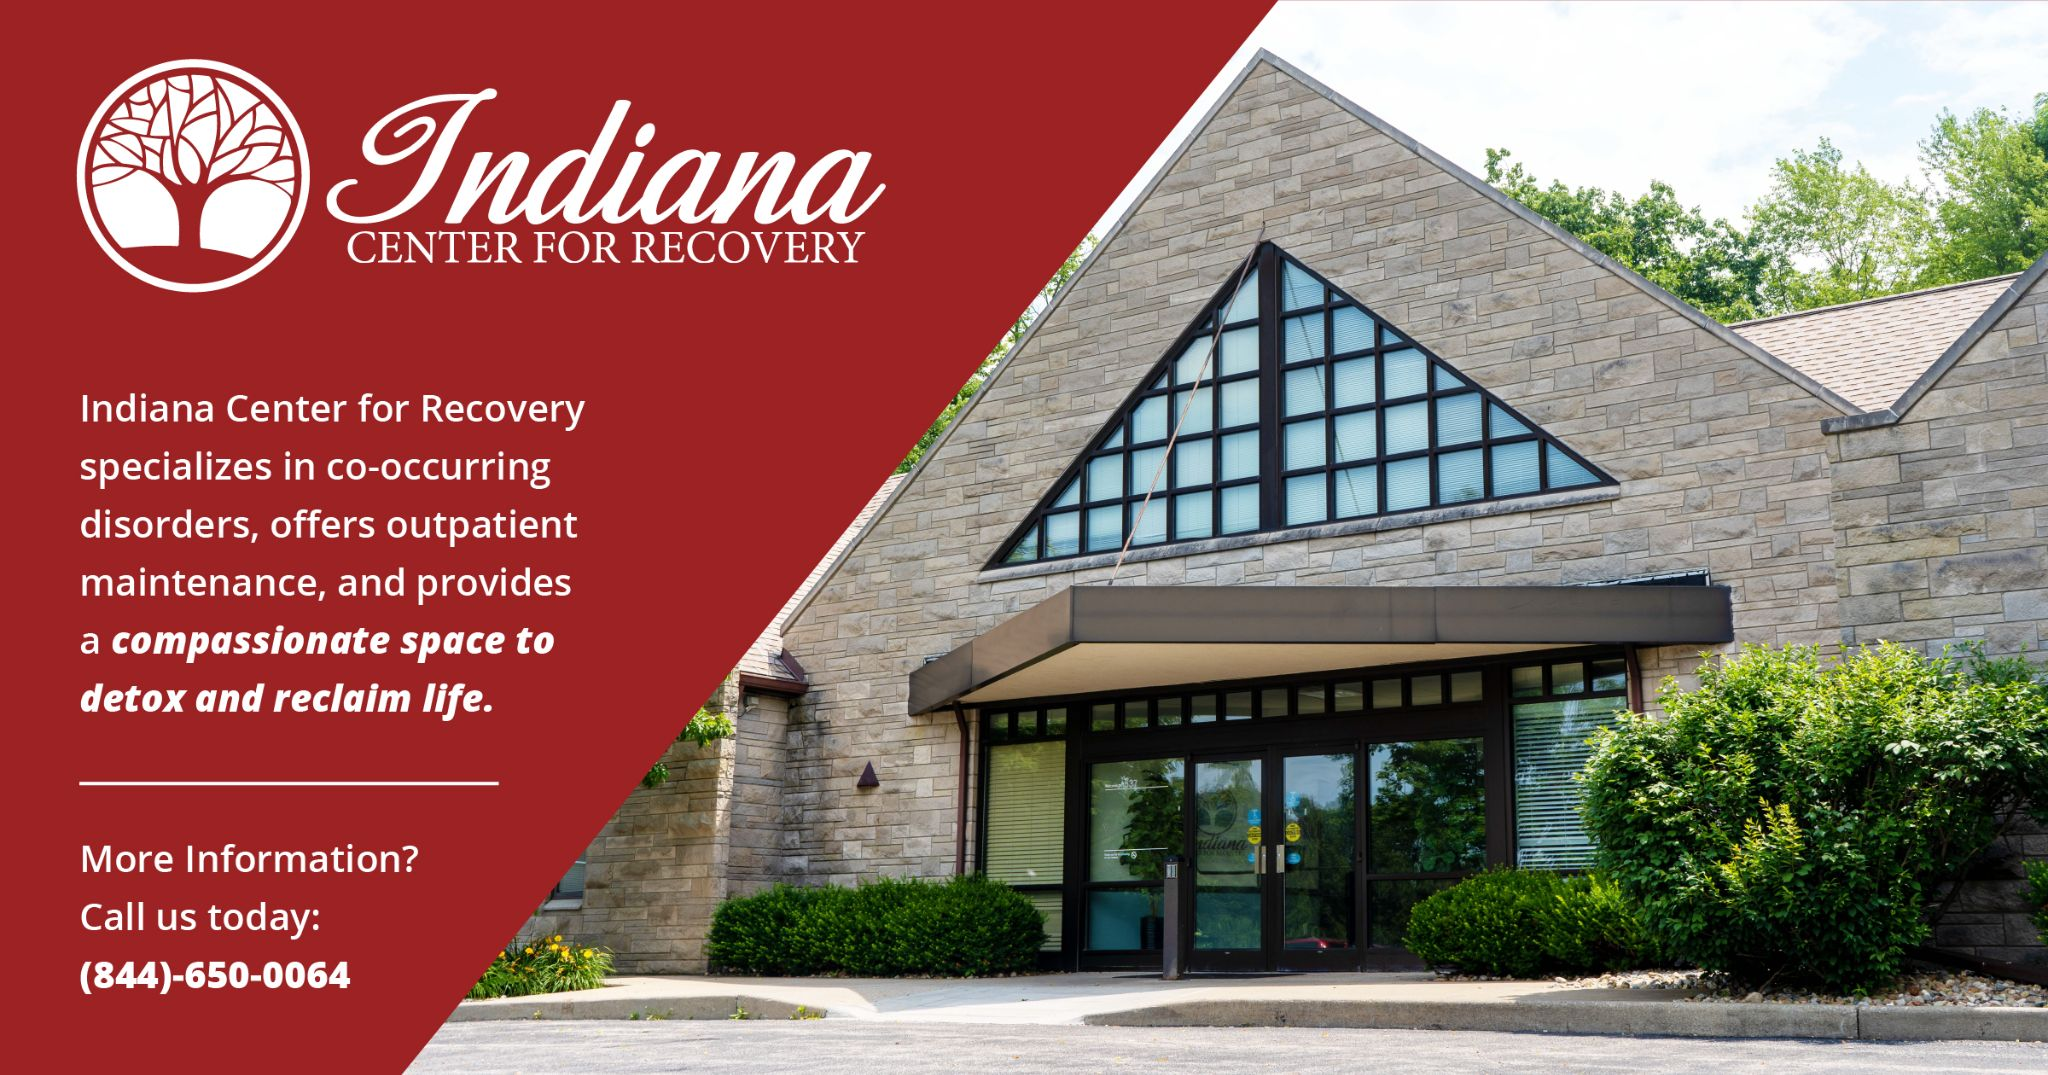 Indiana center for recovery specializes in co-occuring disorders, offers outpatient maintenance, and provides a compassionate space to detox and reclaim life.